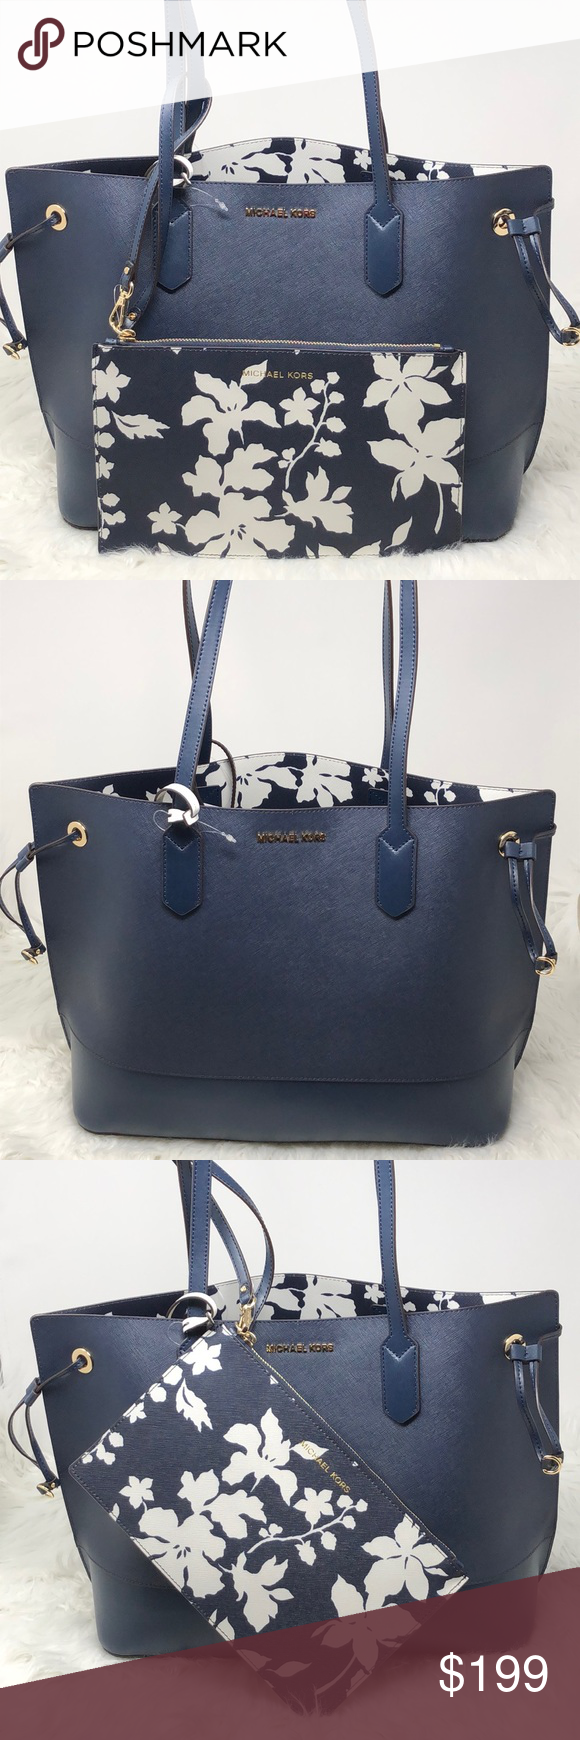 "1047f6e4c4307 NWT Michael Kors Trista LG drawstring tote Navy Michael Kors Trista large  drawstring tote Navy white MAde Of saffiano leather Measurements about  11""height ..."